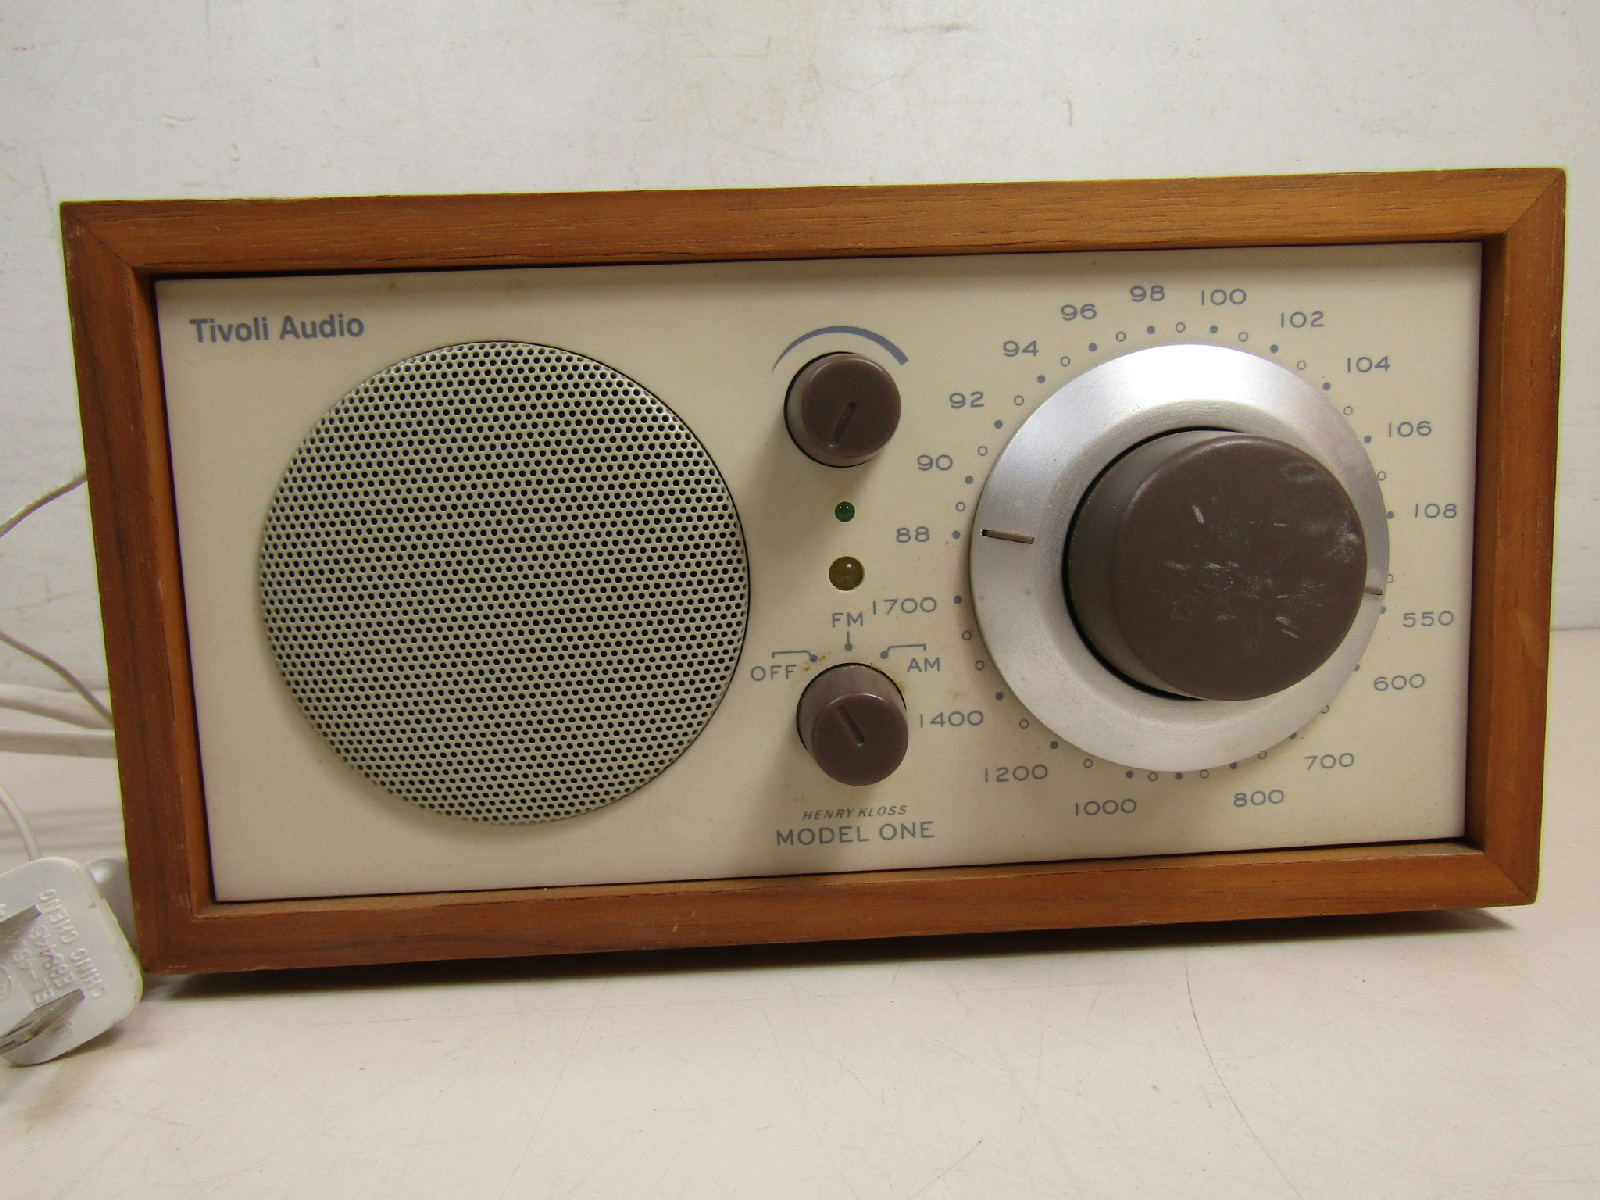 tivoli audio henry kloss model one table radio tested ebay. Black Bedroom Furniture Sets. Home Design Ideas